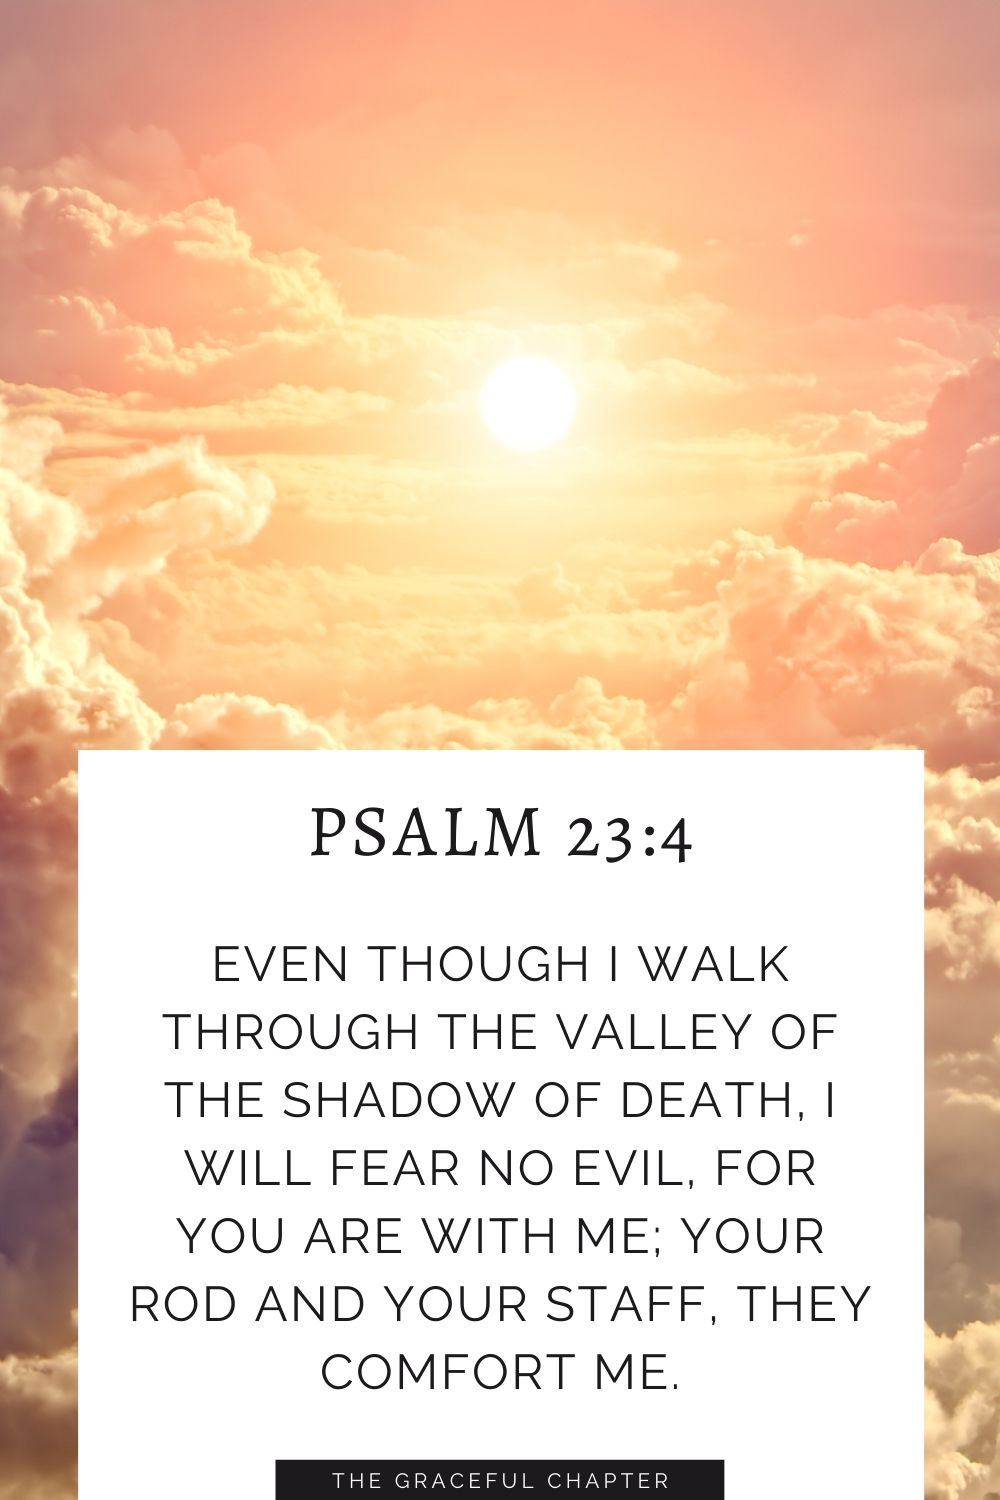 Even though I walk through the valley of the shadow of death, I will fear no evil, for you are with me; your rod and your staff, they comfort me. Psalm 23:4